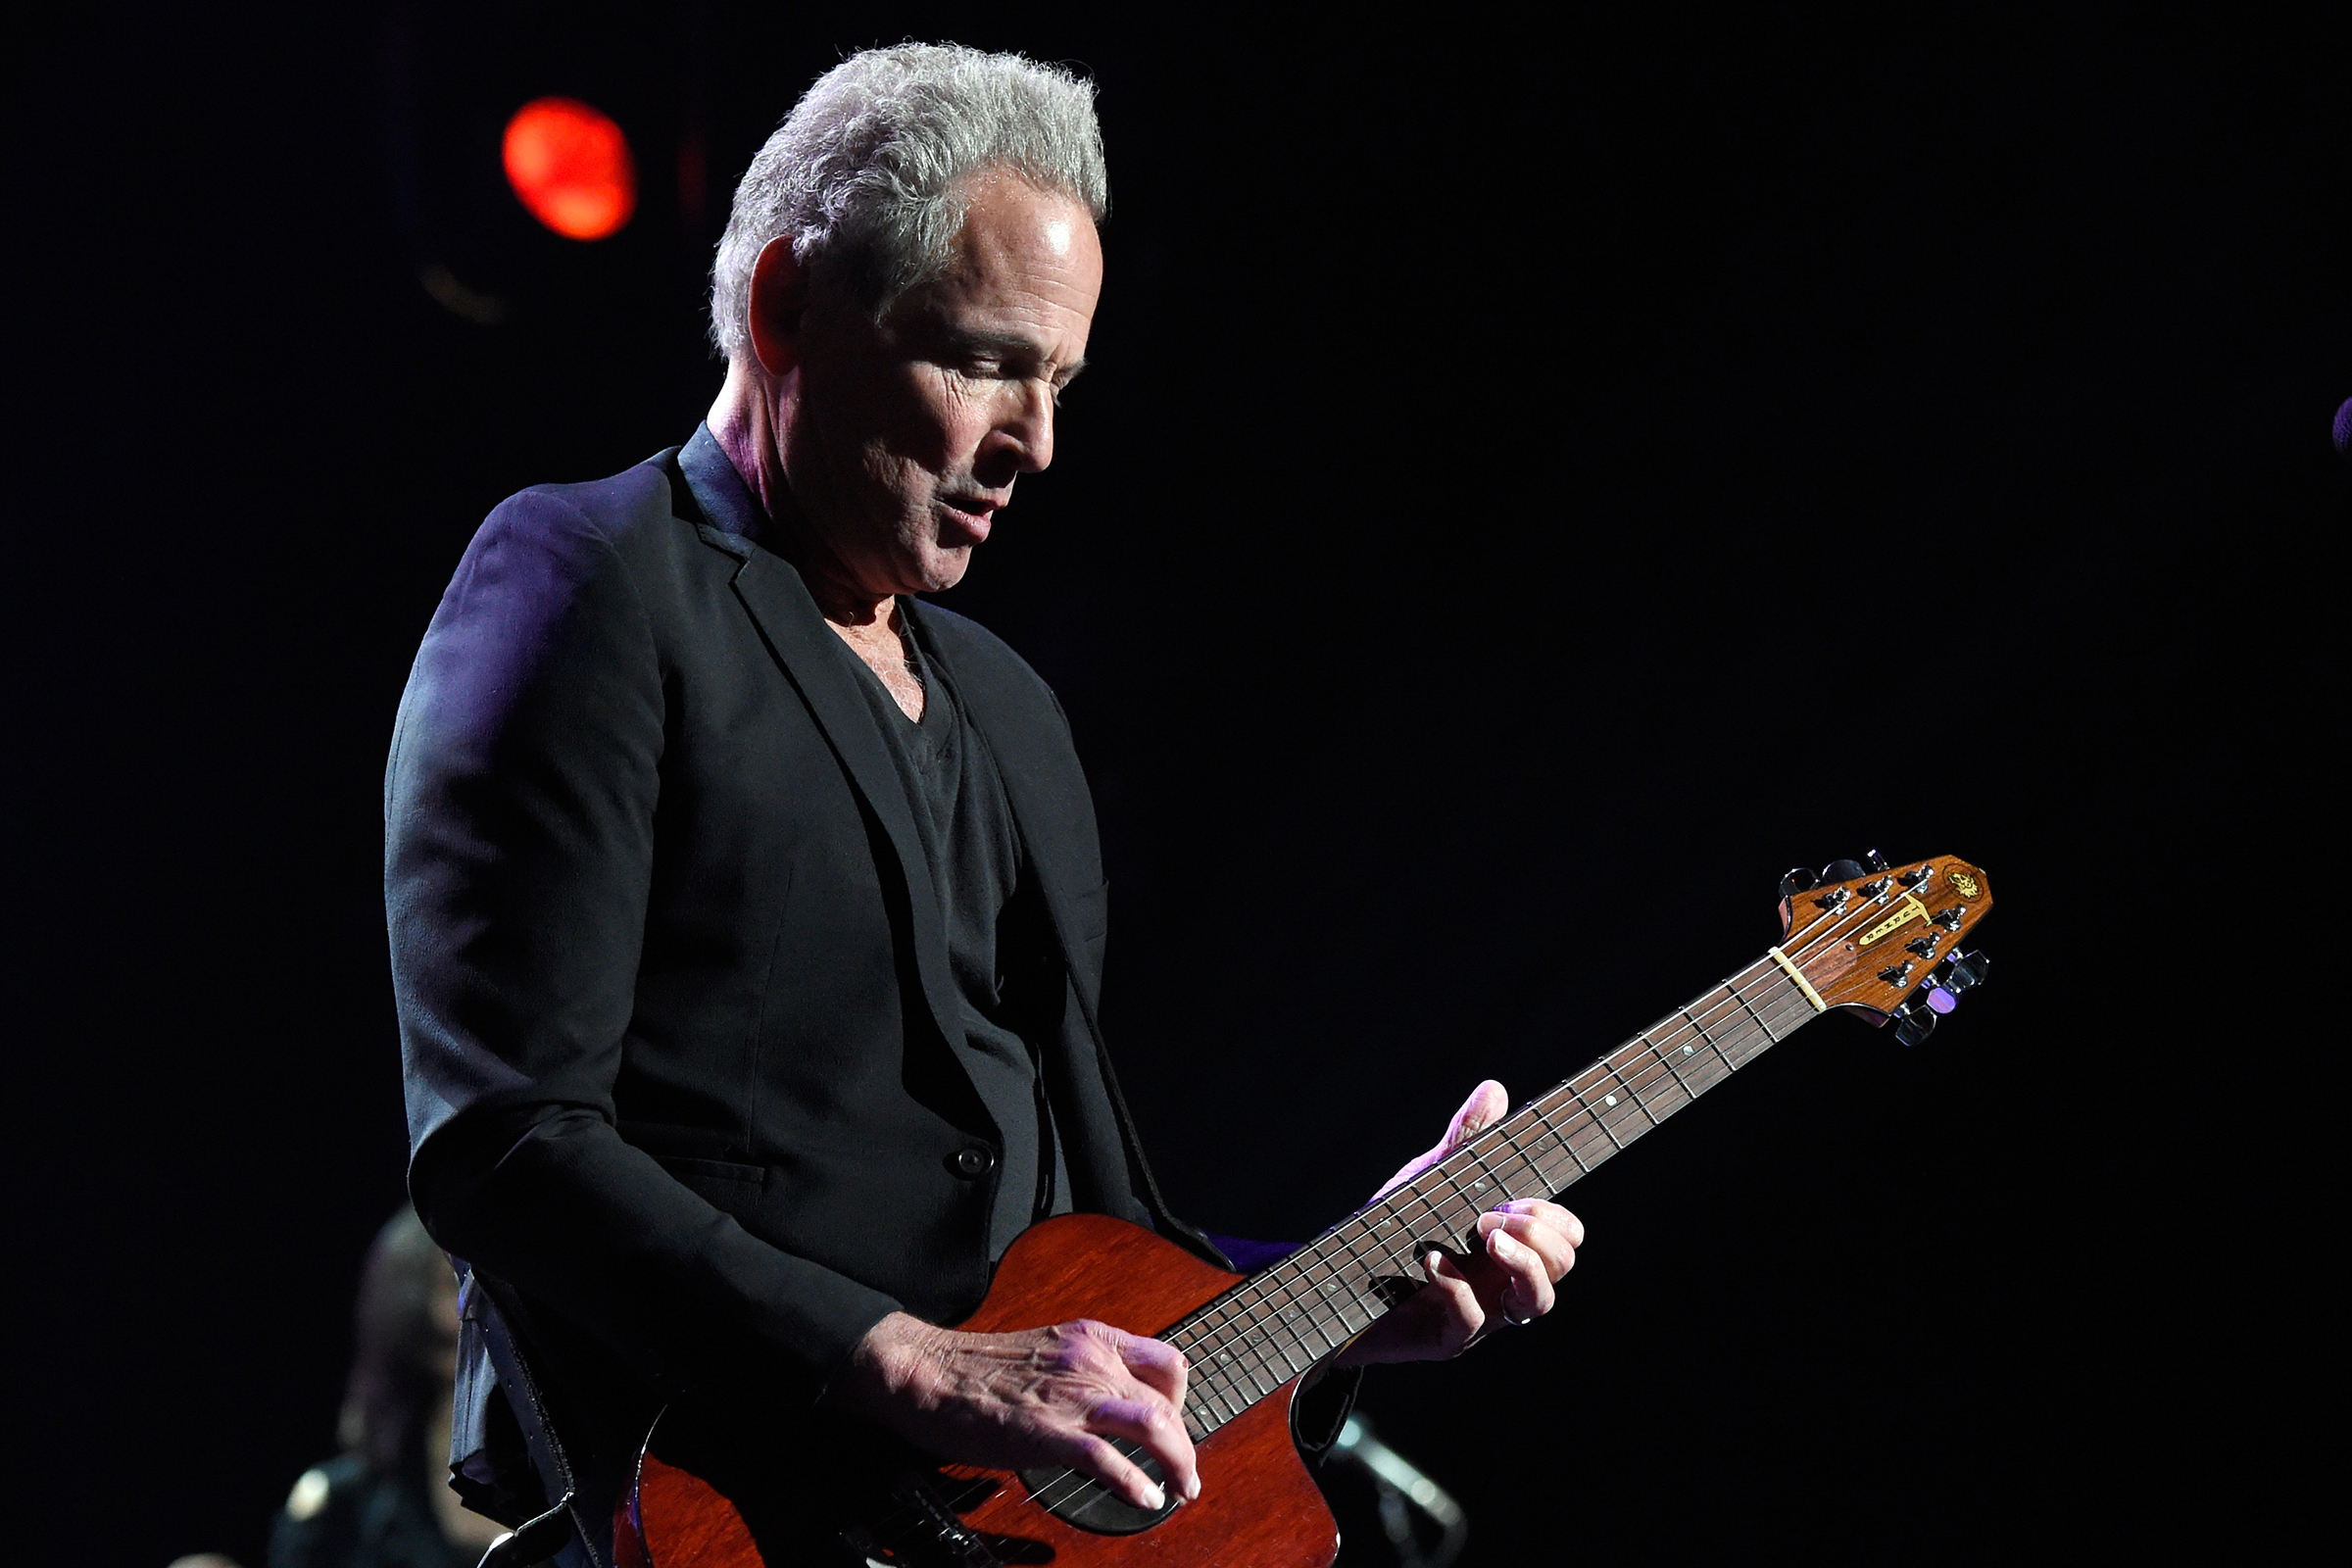 Watch Lindsey Buckingham Play Guitar for First Time Since Heart Surgery